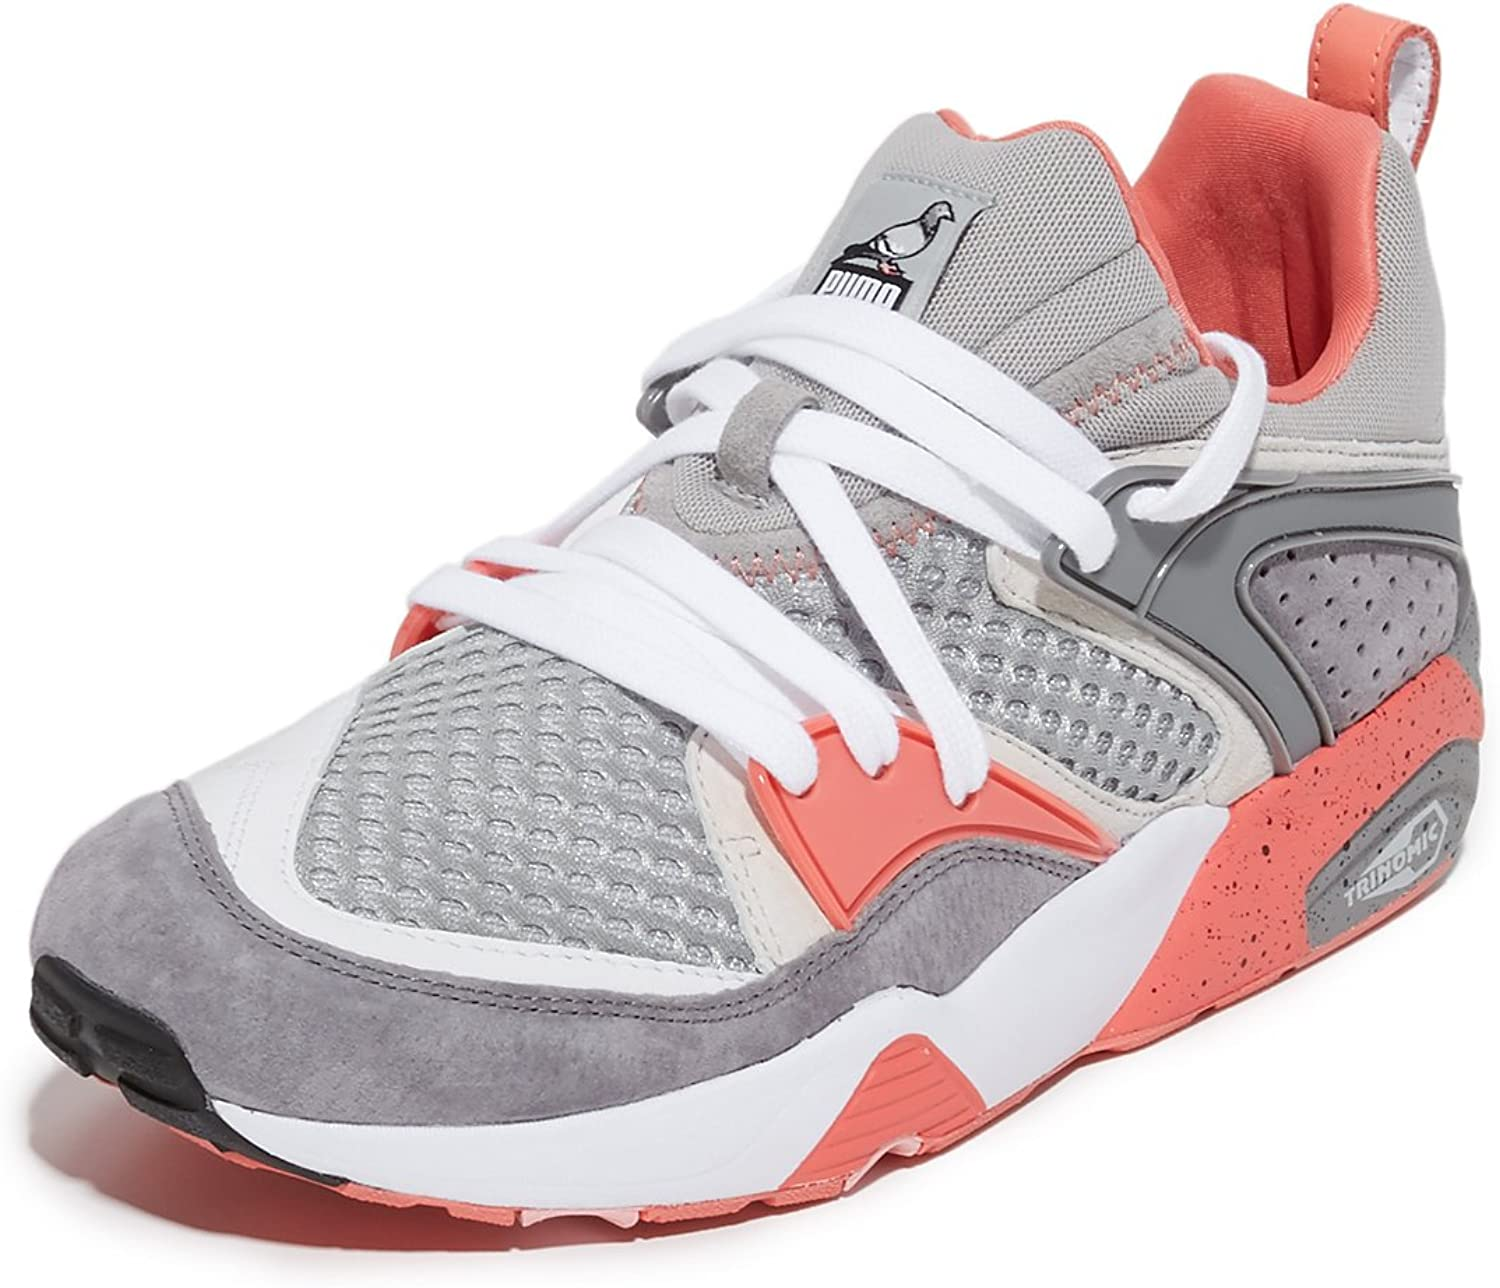 PUMA Select Men's Blaze of Glory OG x Staple Sneakers